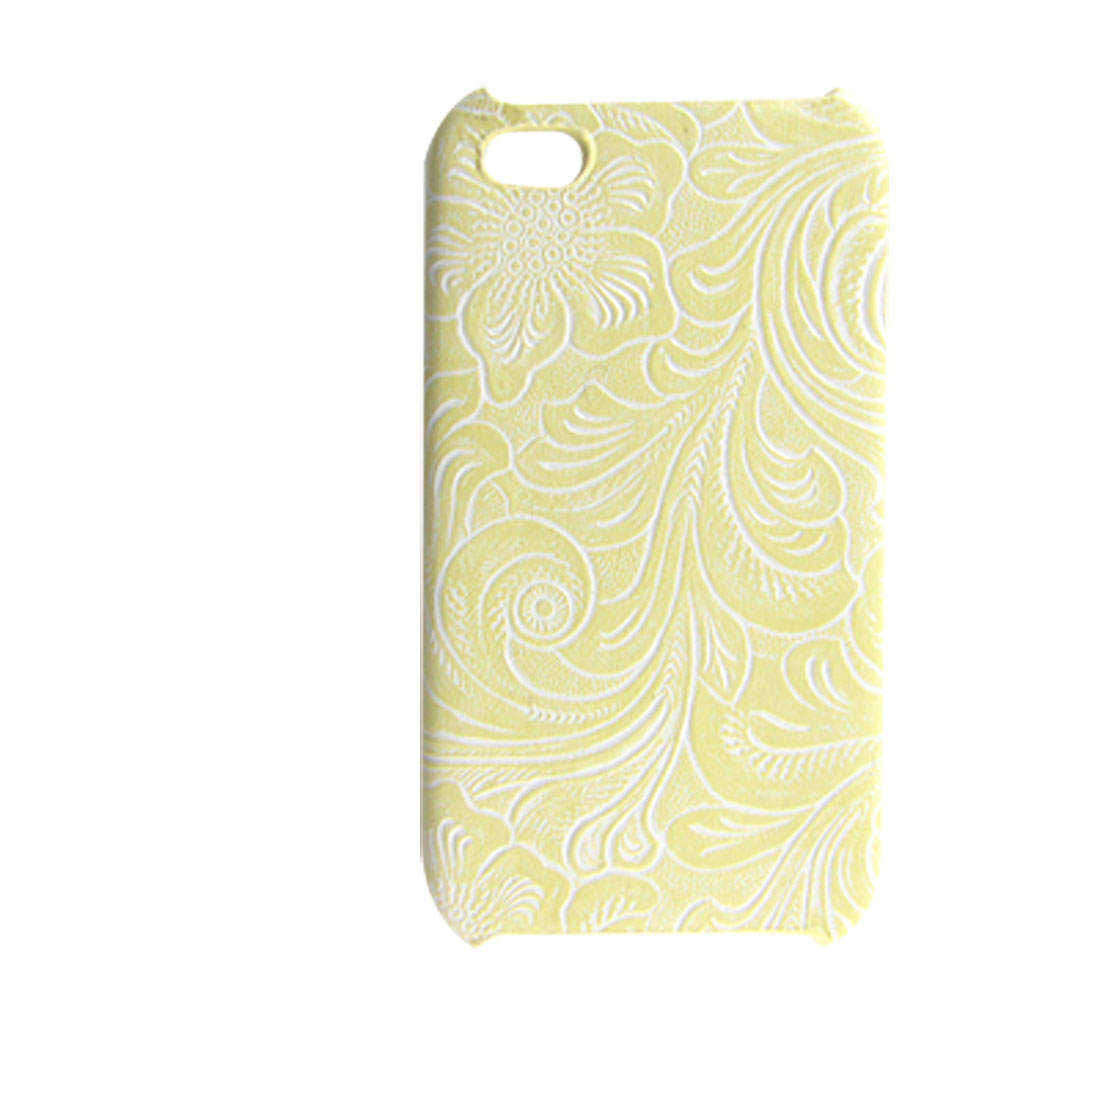 Light Yellow Faux Leather Coated Hard Protector for iPhone 4 4G